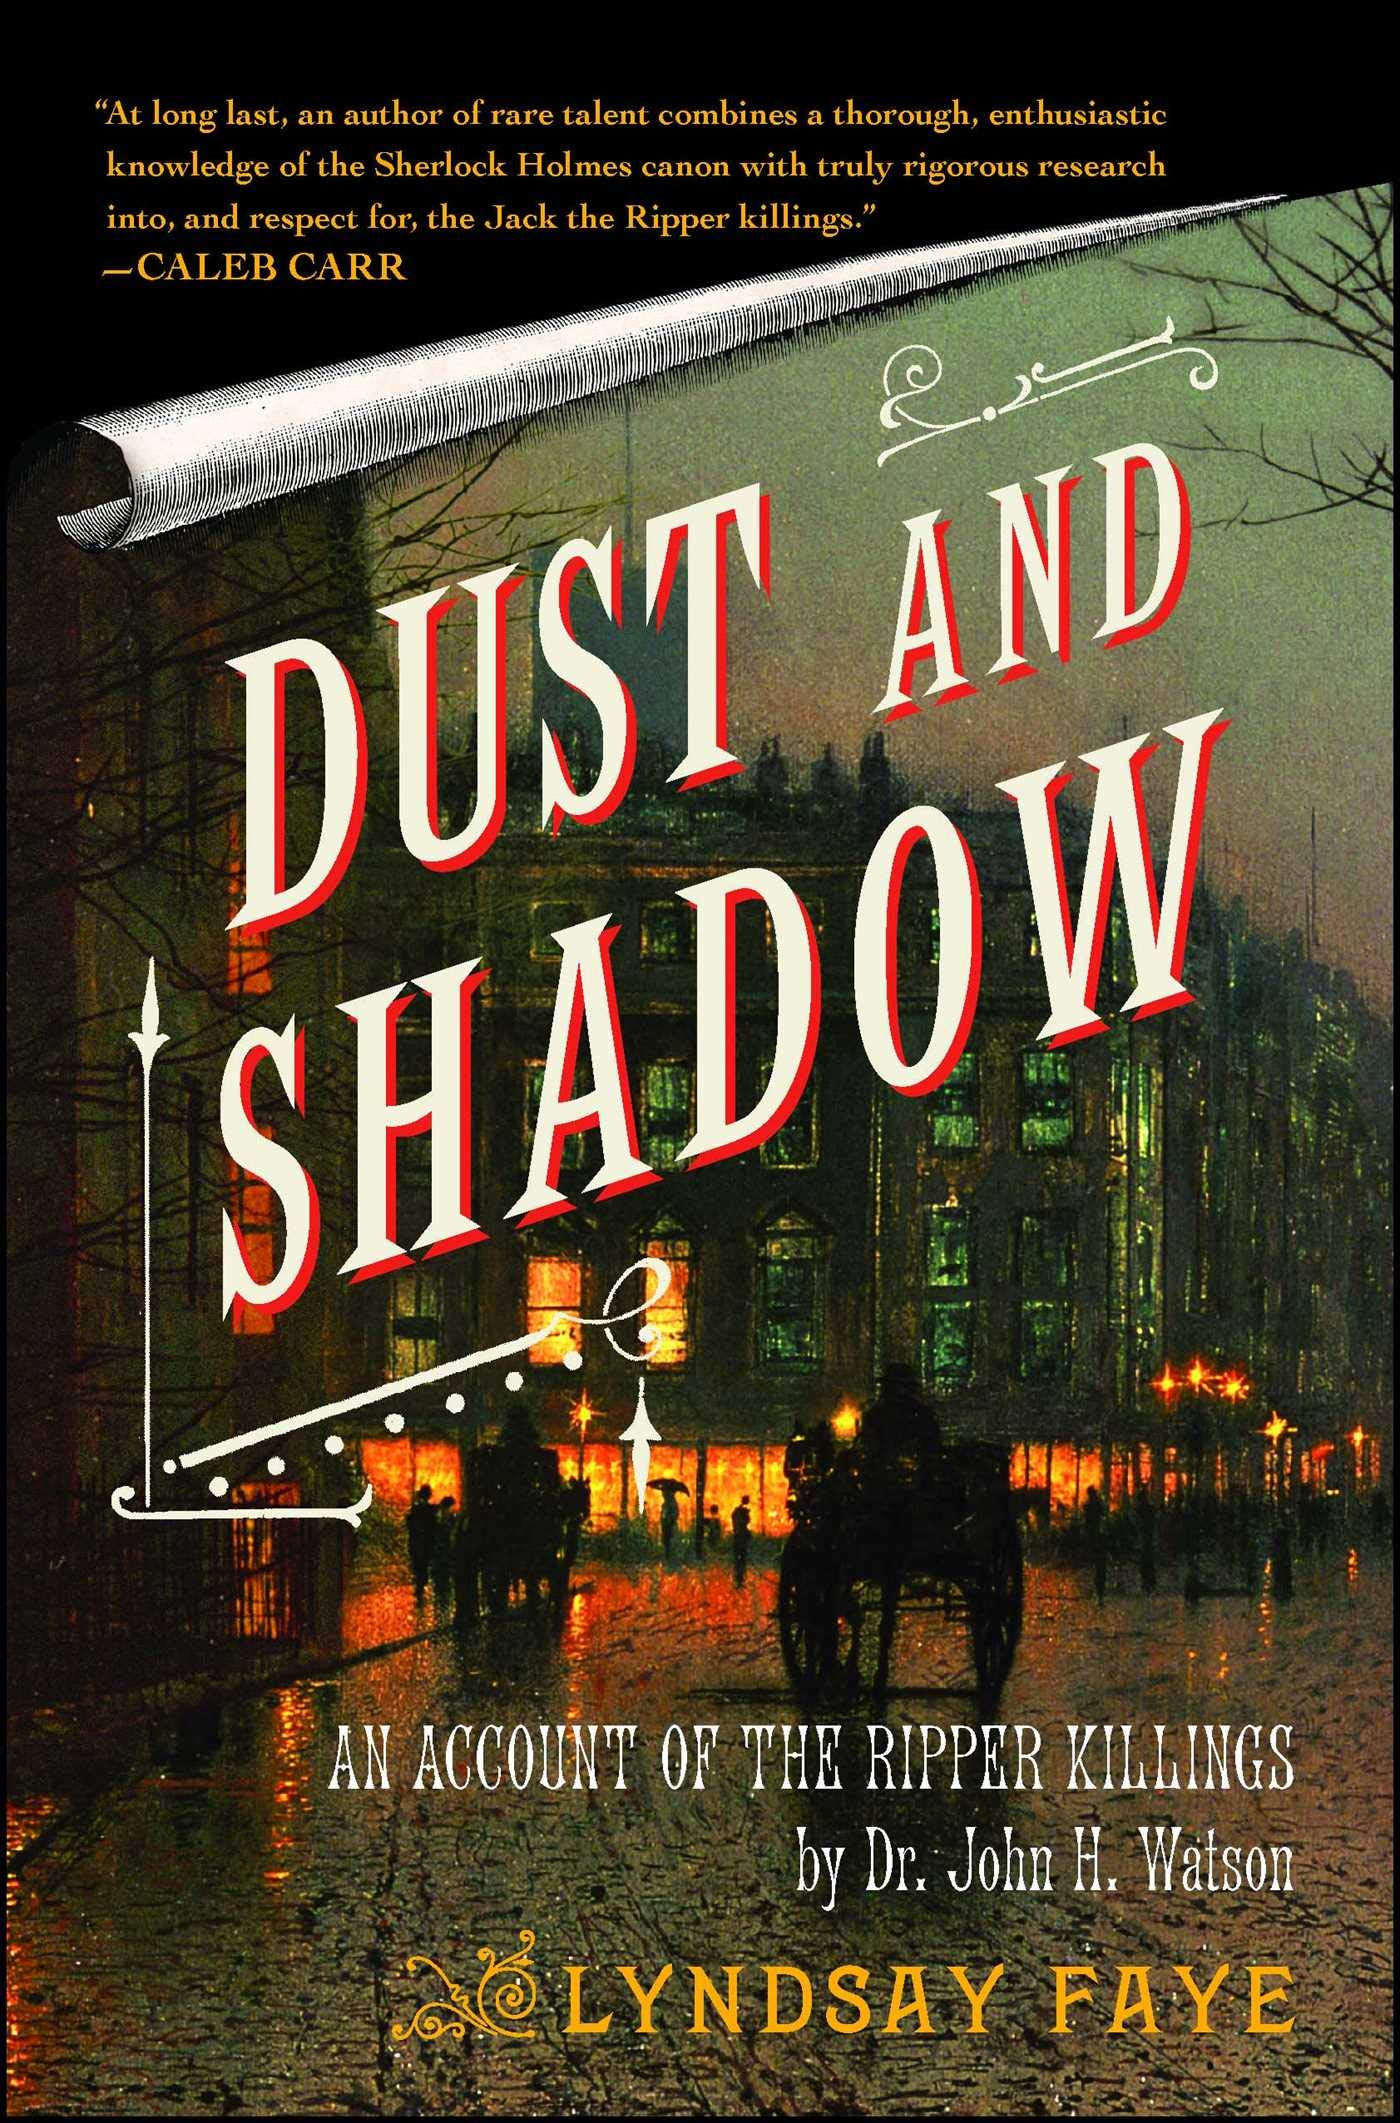 Amazon com: Dust and Shadow: An Account of the Ripper Killings by Dr